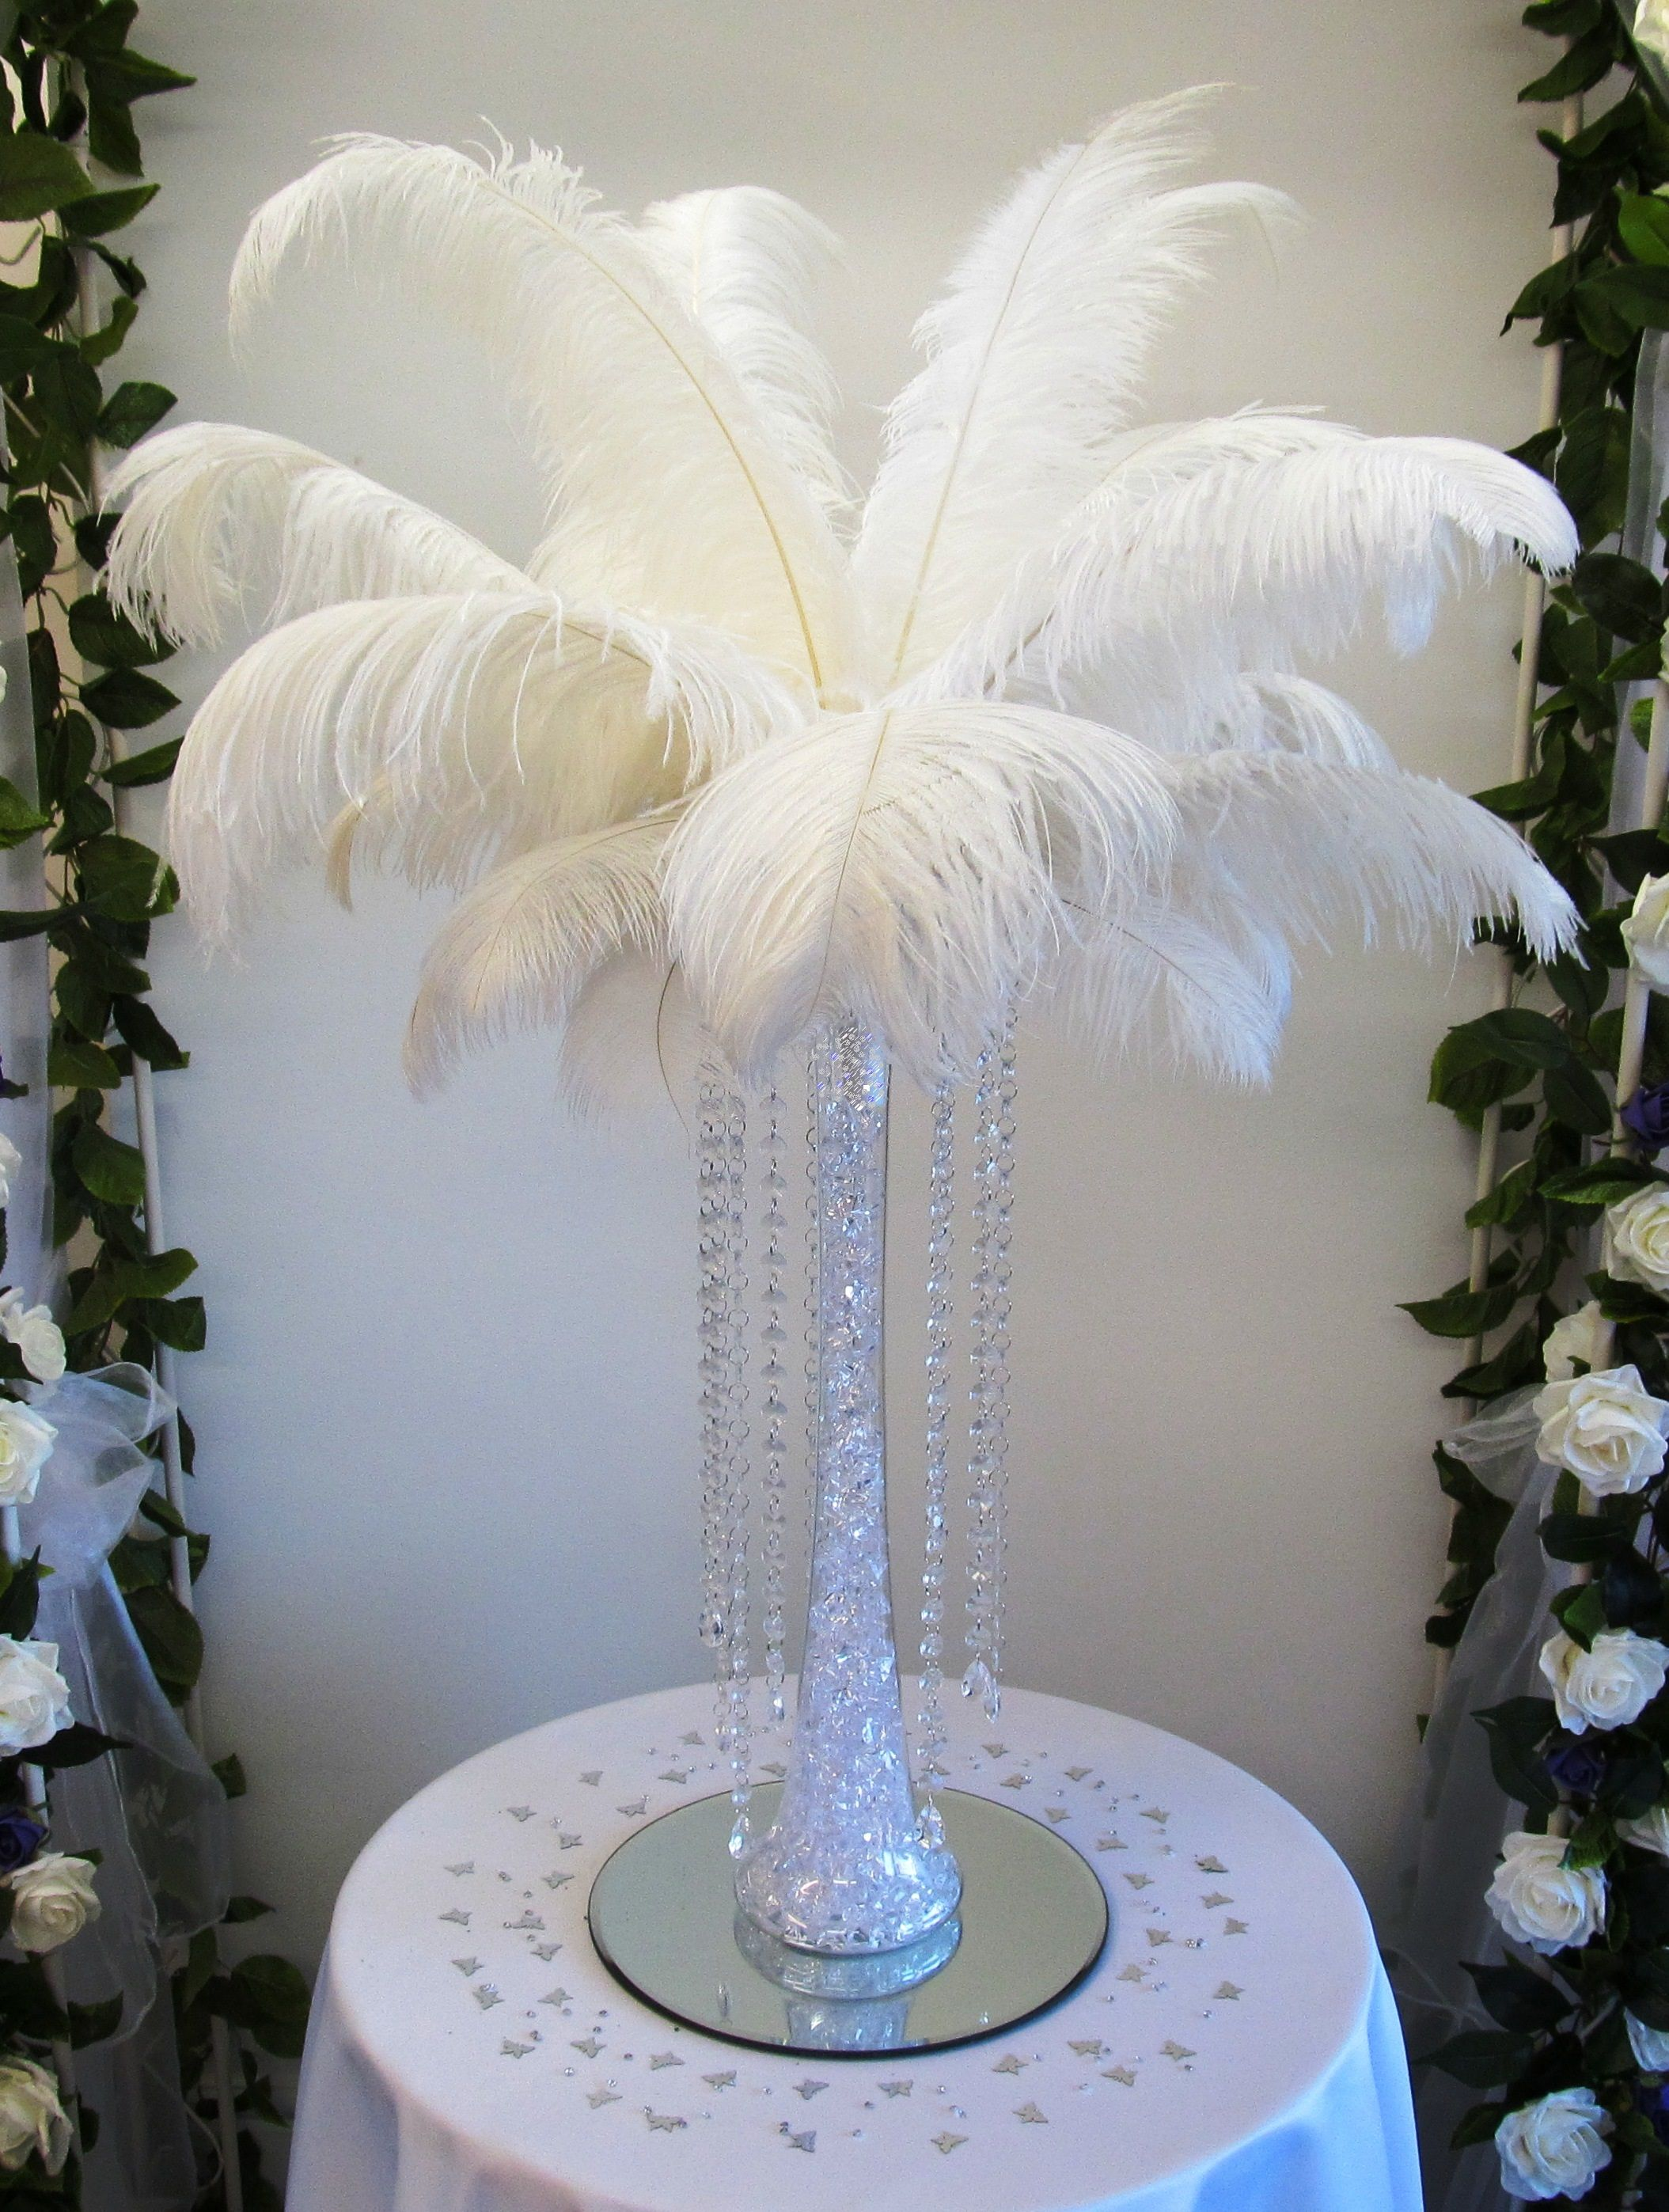 Merveilleux Tall Lily Vase Table Centrepiece With White Feathers